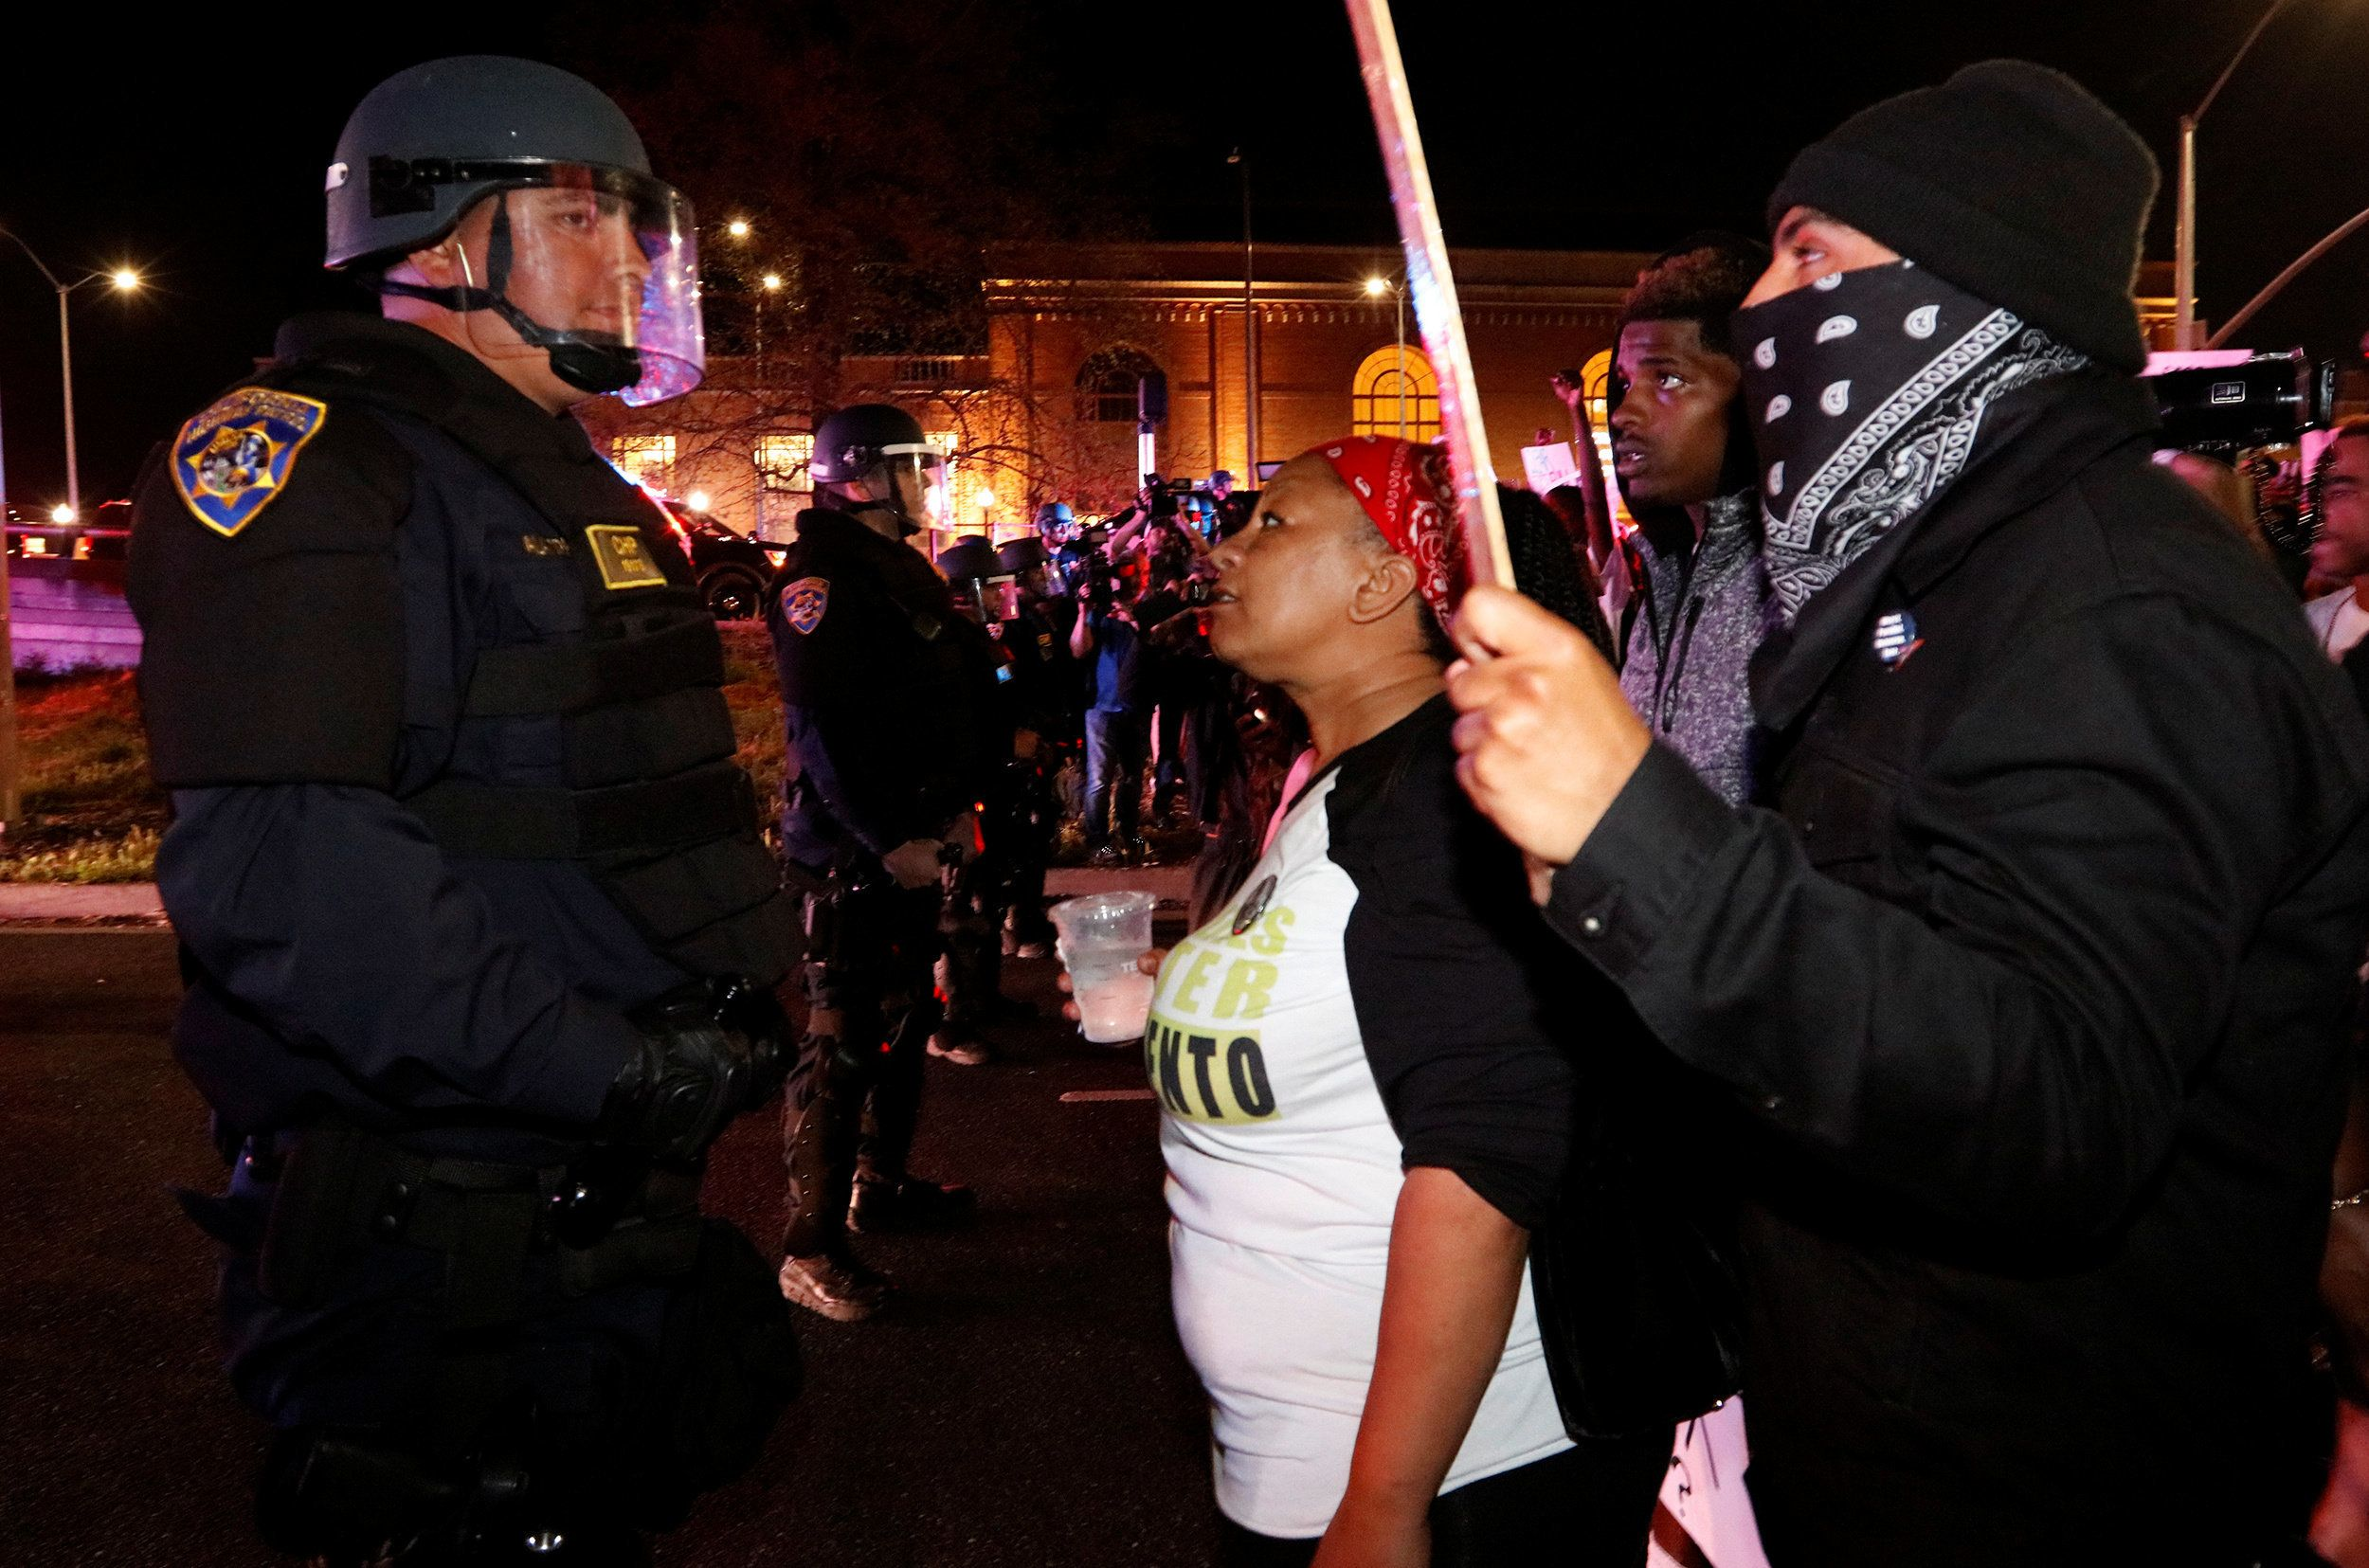 Demonstrators face off with California Highway Patrol officers as they protest the police shooting of Stephon Clark, in Sacramento, California, U.S., March 30, 2018.  REUTERS/Bob Strong